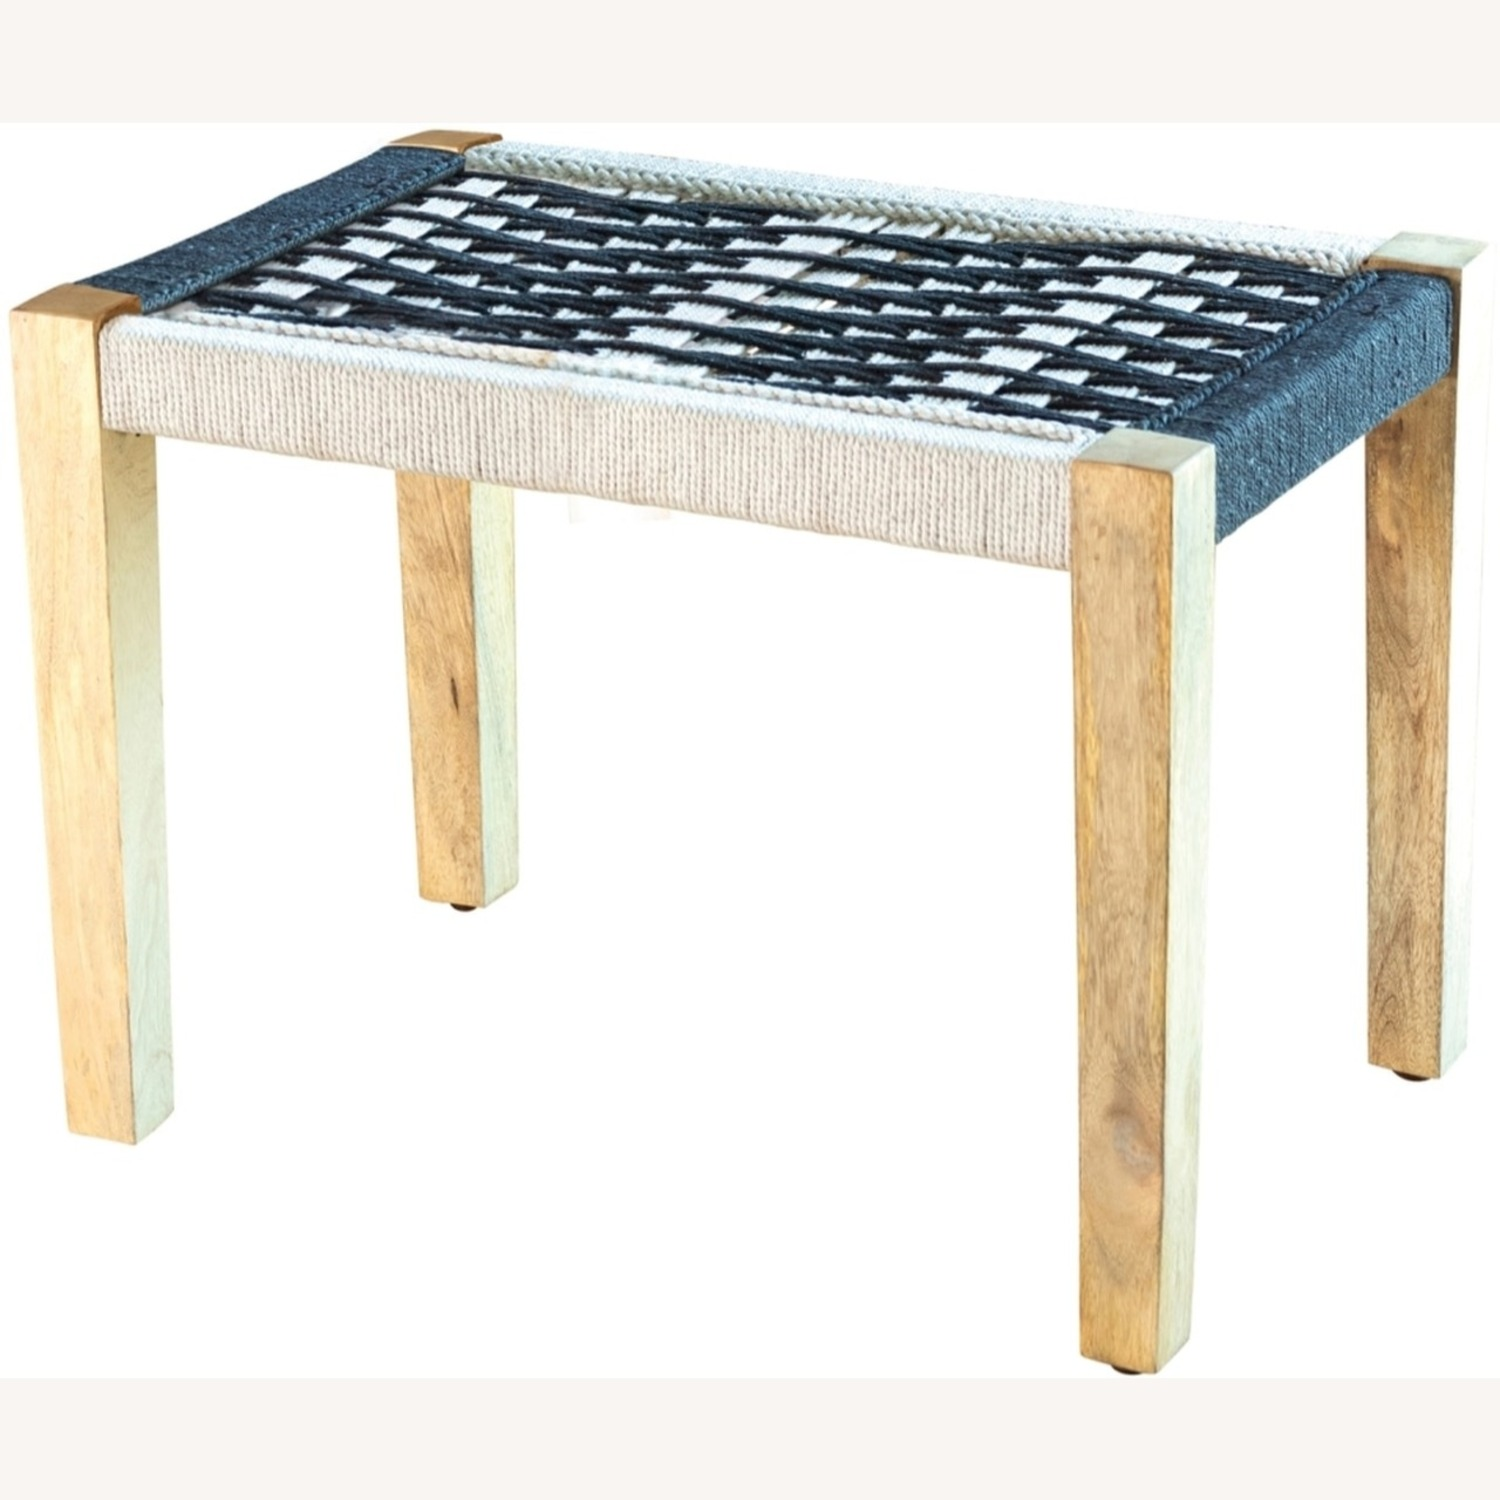 Bench In 2-Tone Black & White Woven Fabric - image-1